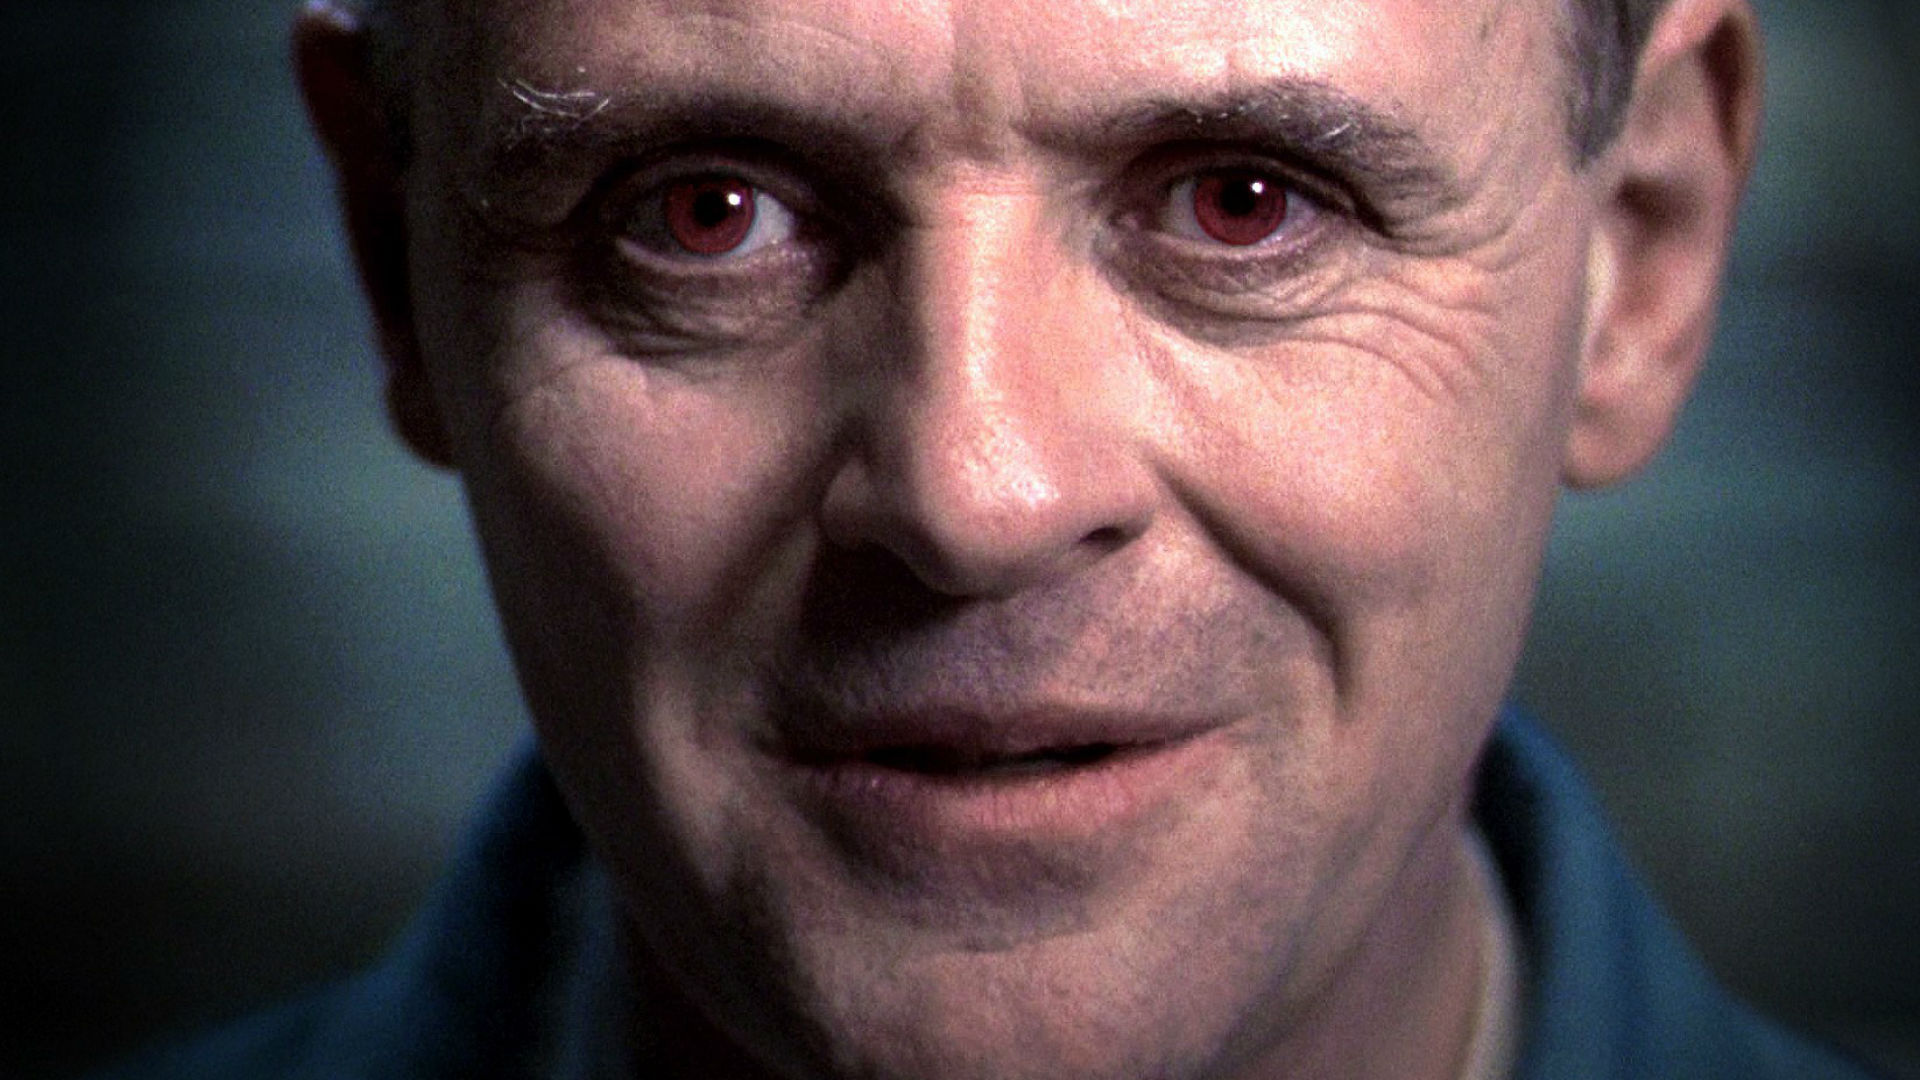 Cannibal Hannibal Lecter from The Silence of the Lambs